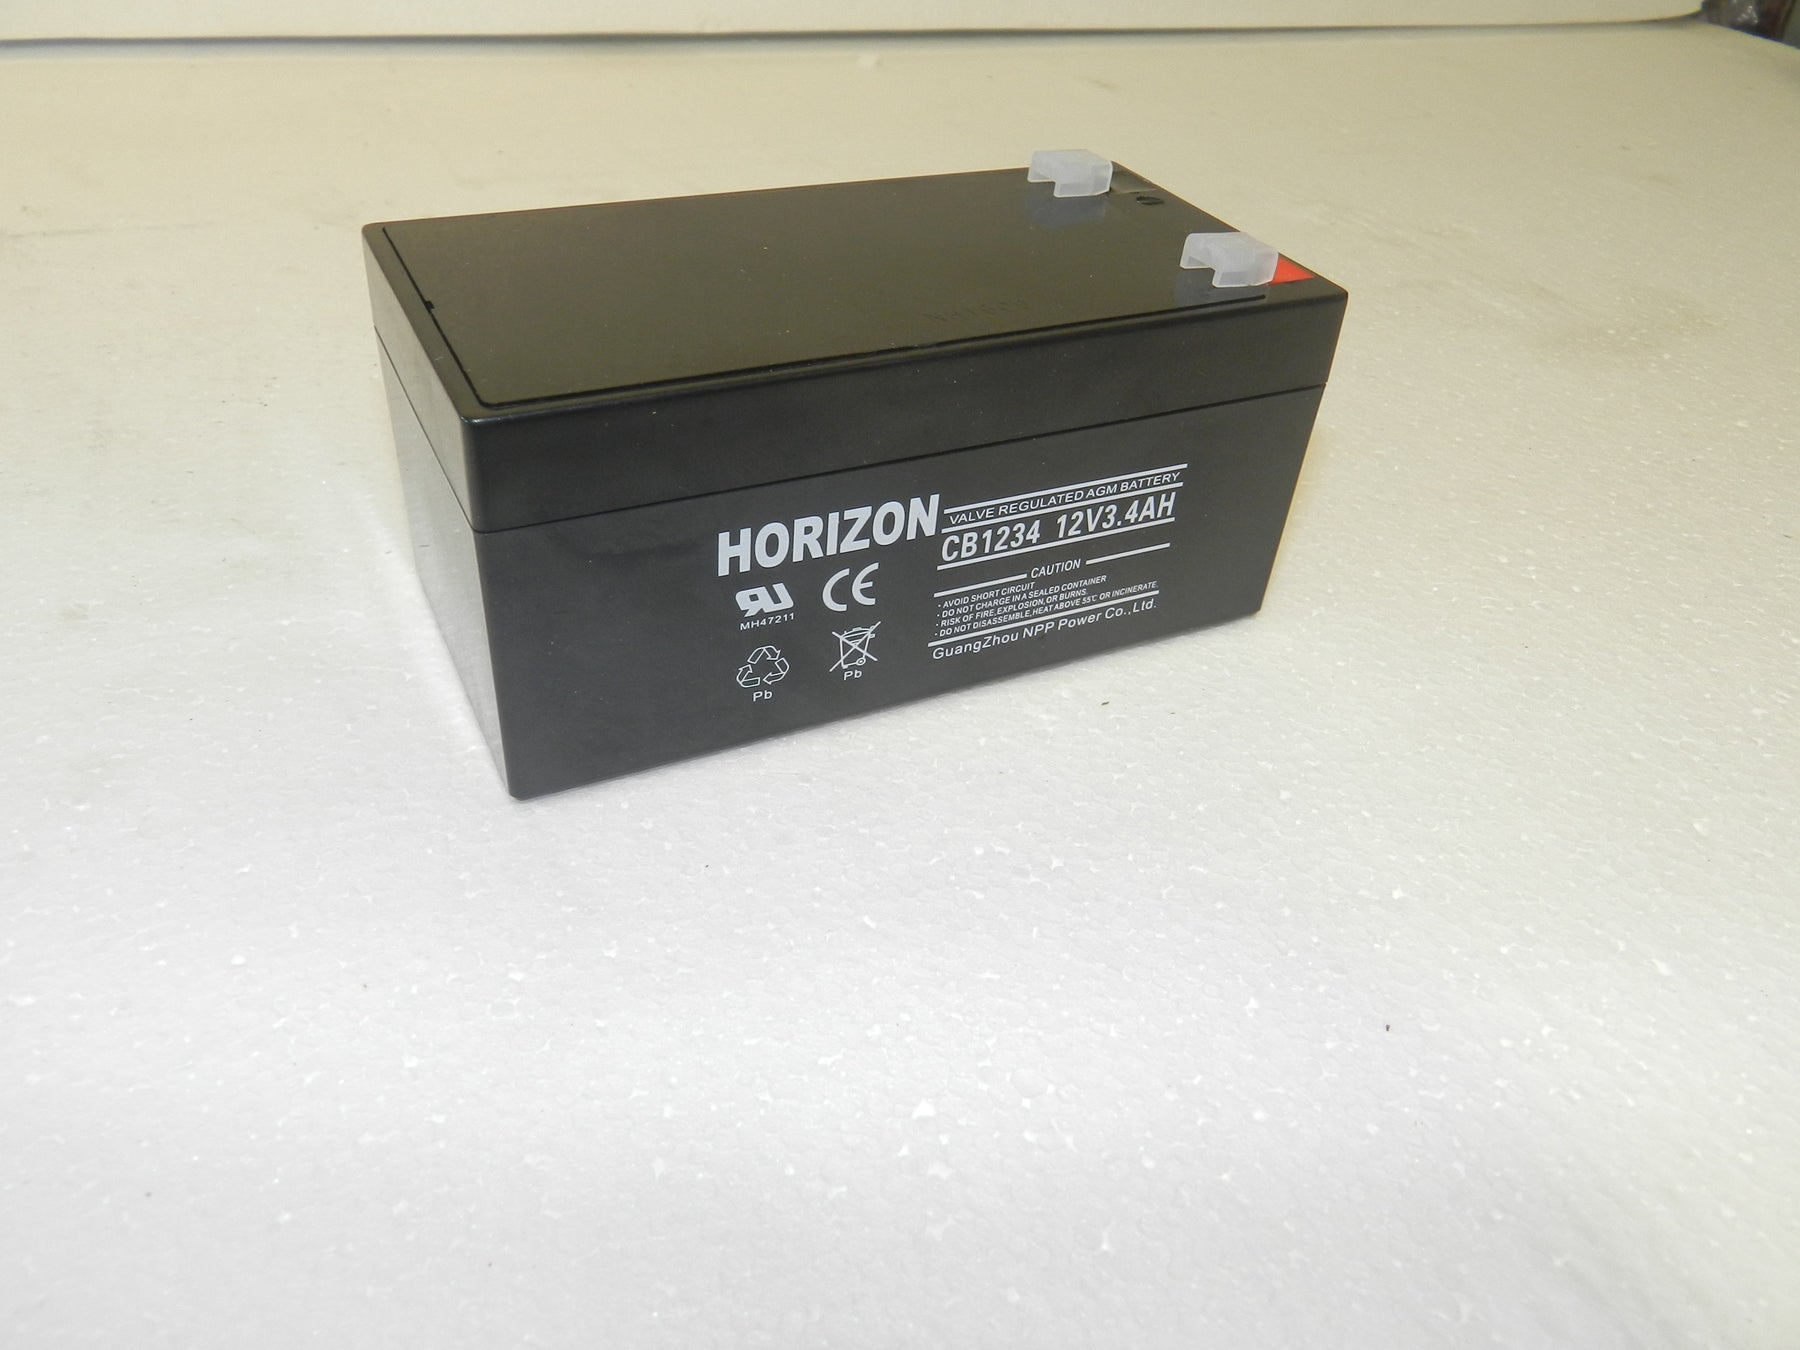 12v 3.4ah sla battery from Batteryworld.ie